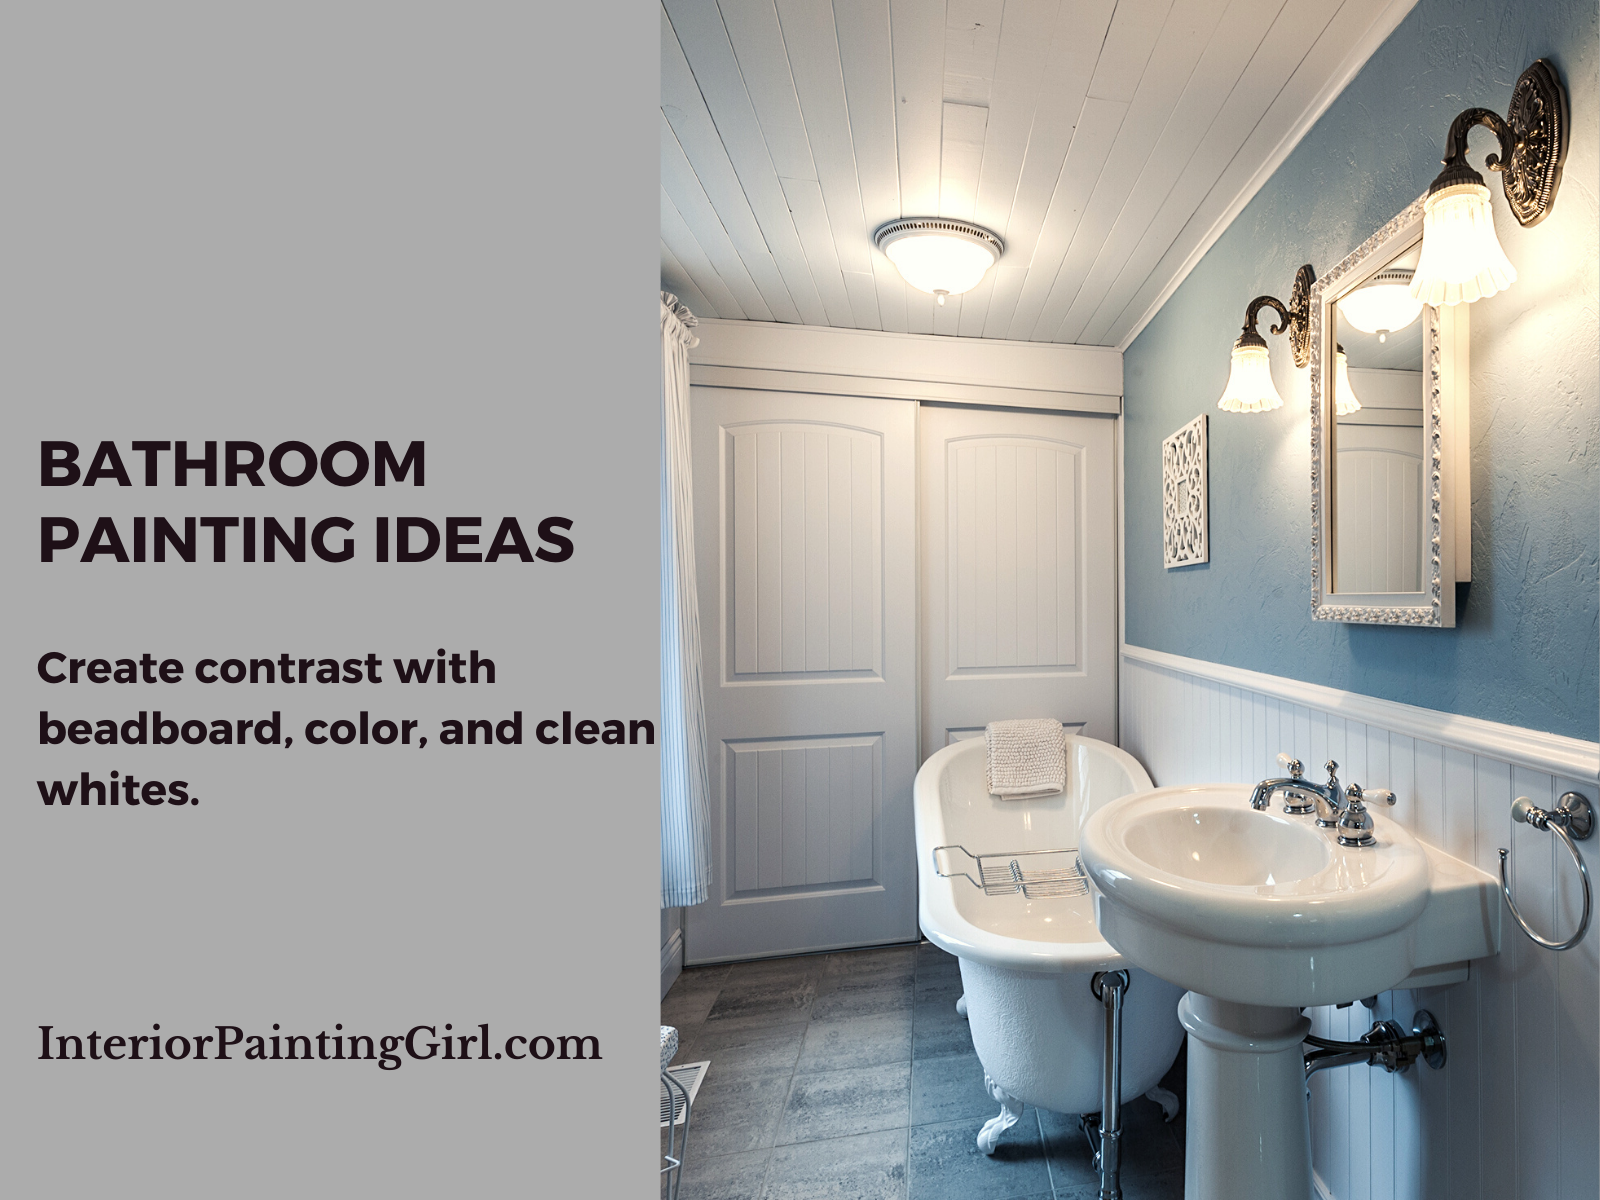 Bathroom Painting Ideas - Beadboard